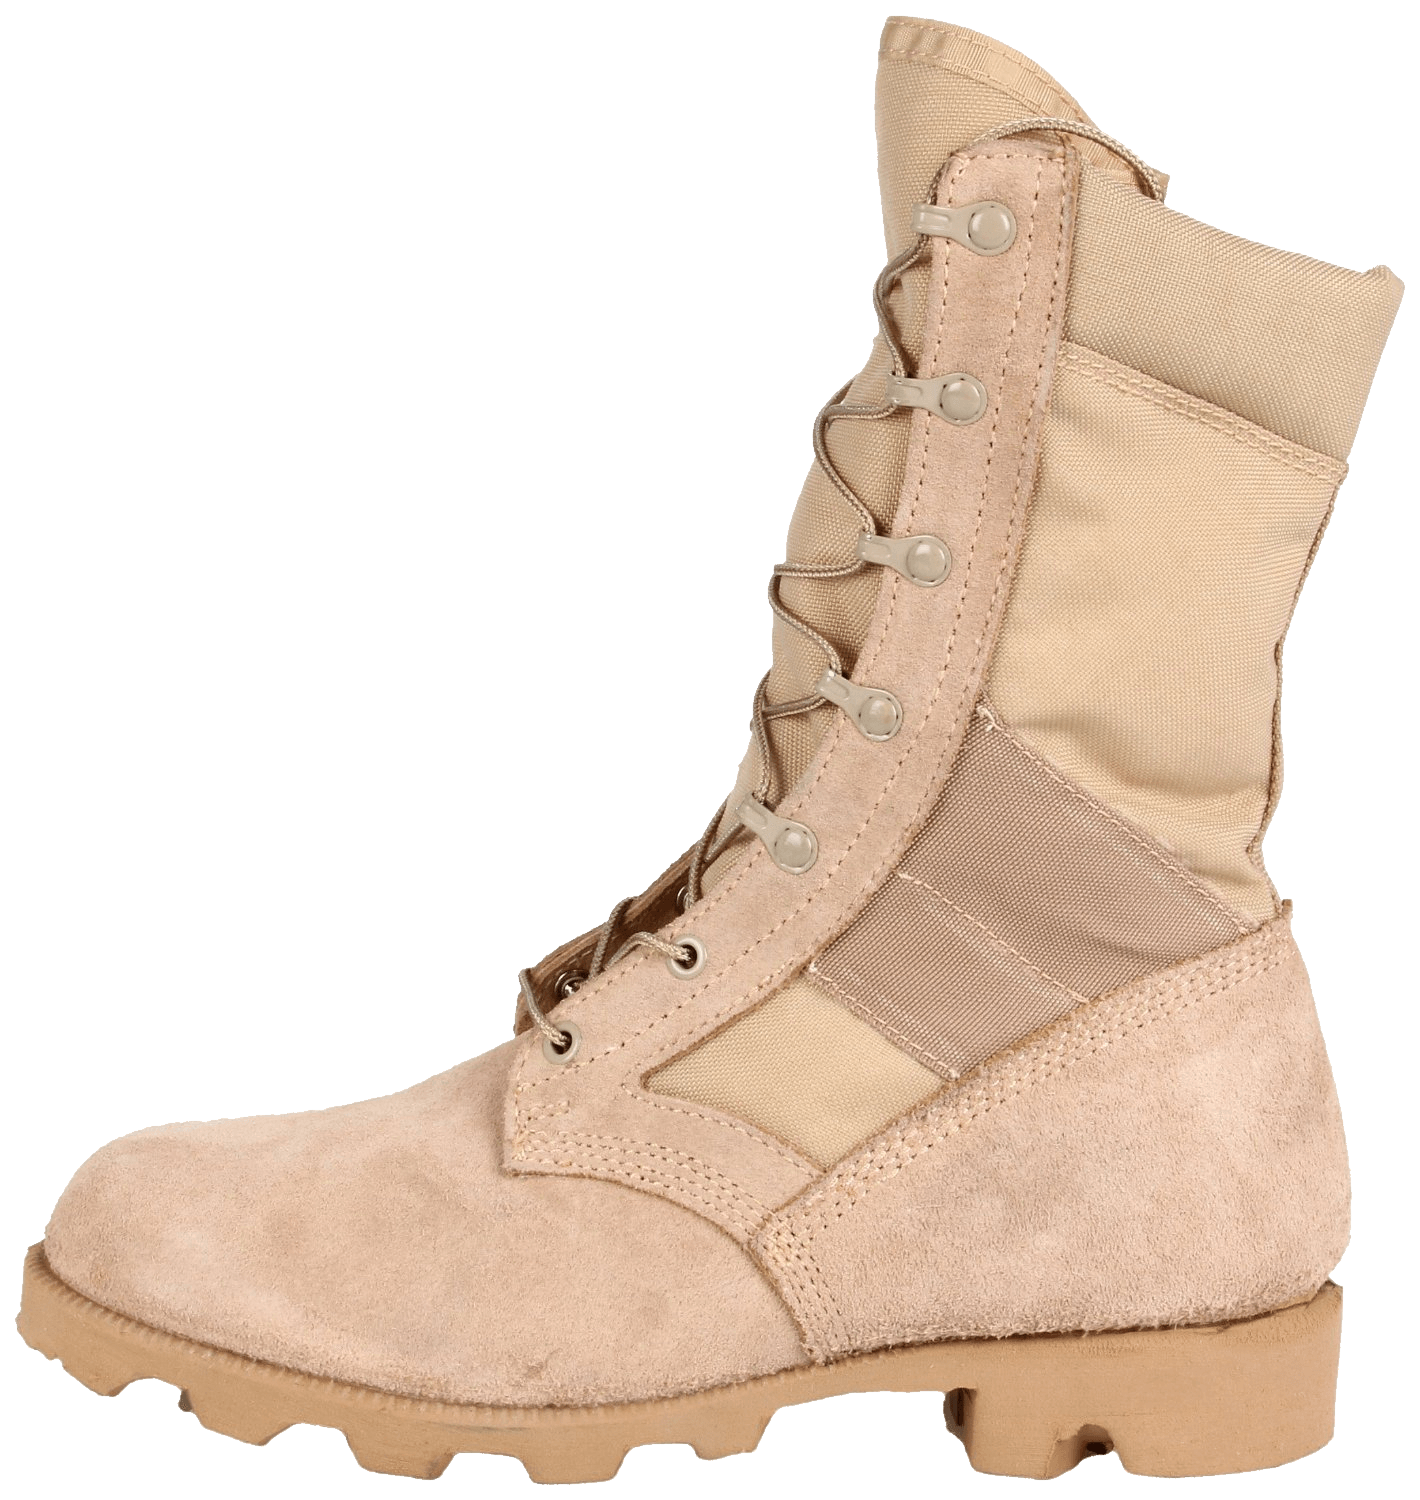 Hike clipart brown boot. Combat boots transparent png